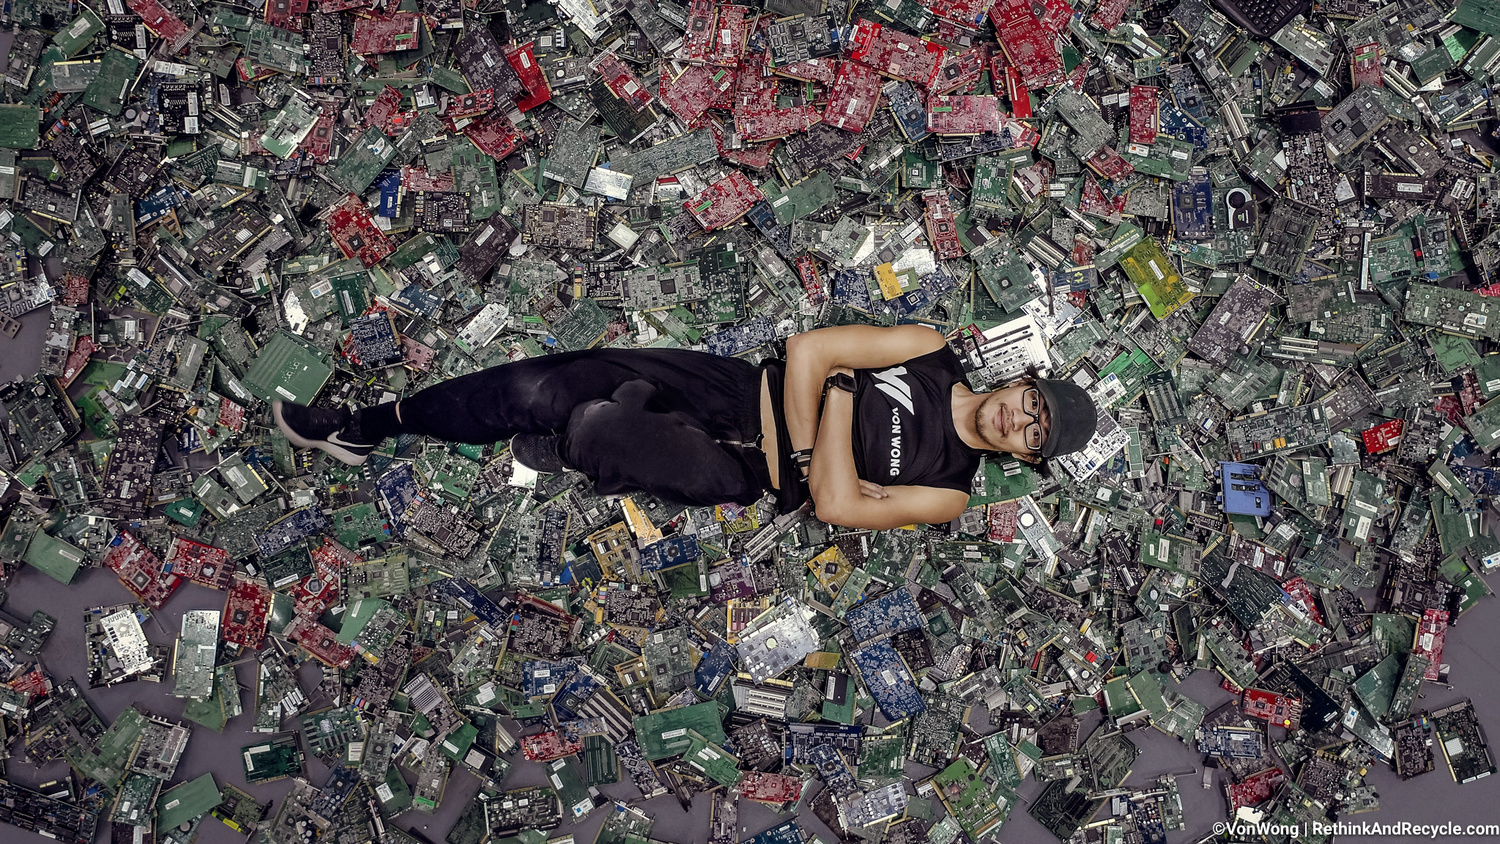 Image of Benjamin Von Wong posing on top of 4100 pounds of e-waste